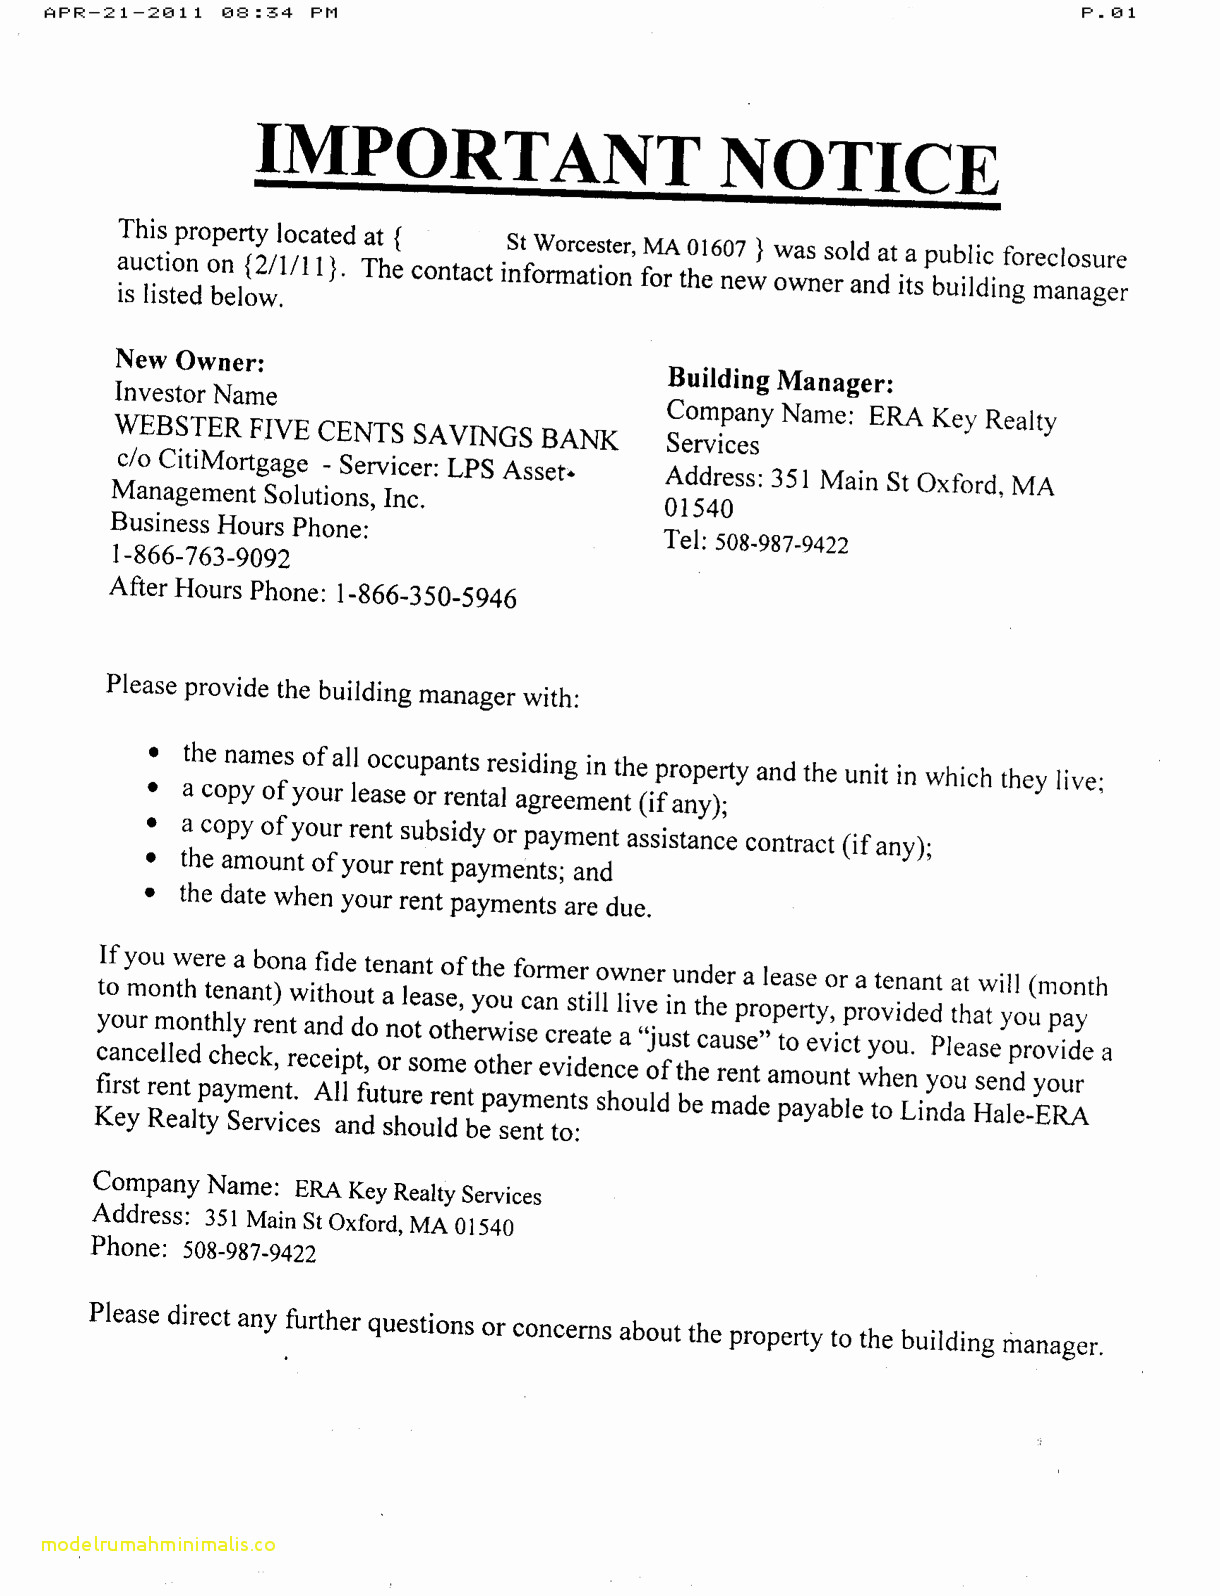 Mortgage Default Letter Template - New Mortgage Default Letter Template A Place for Template Lover